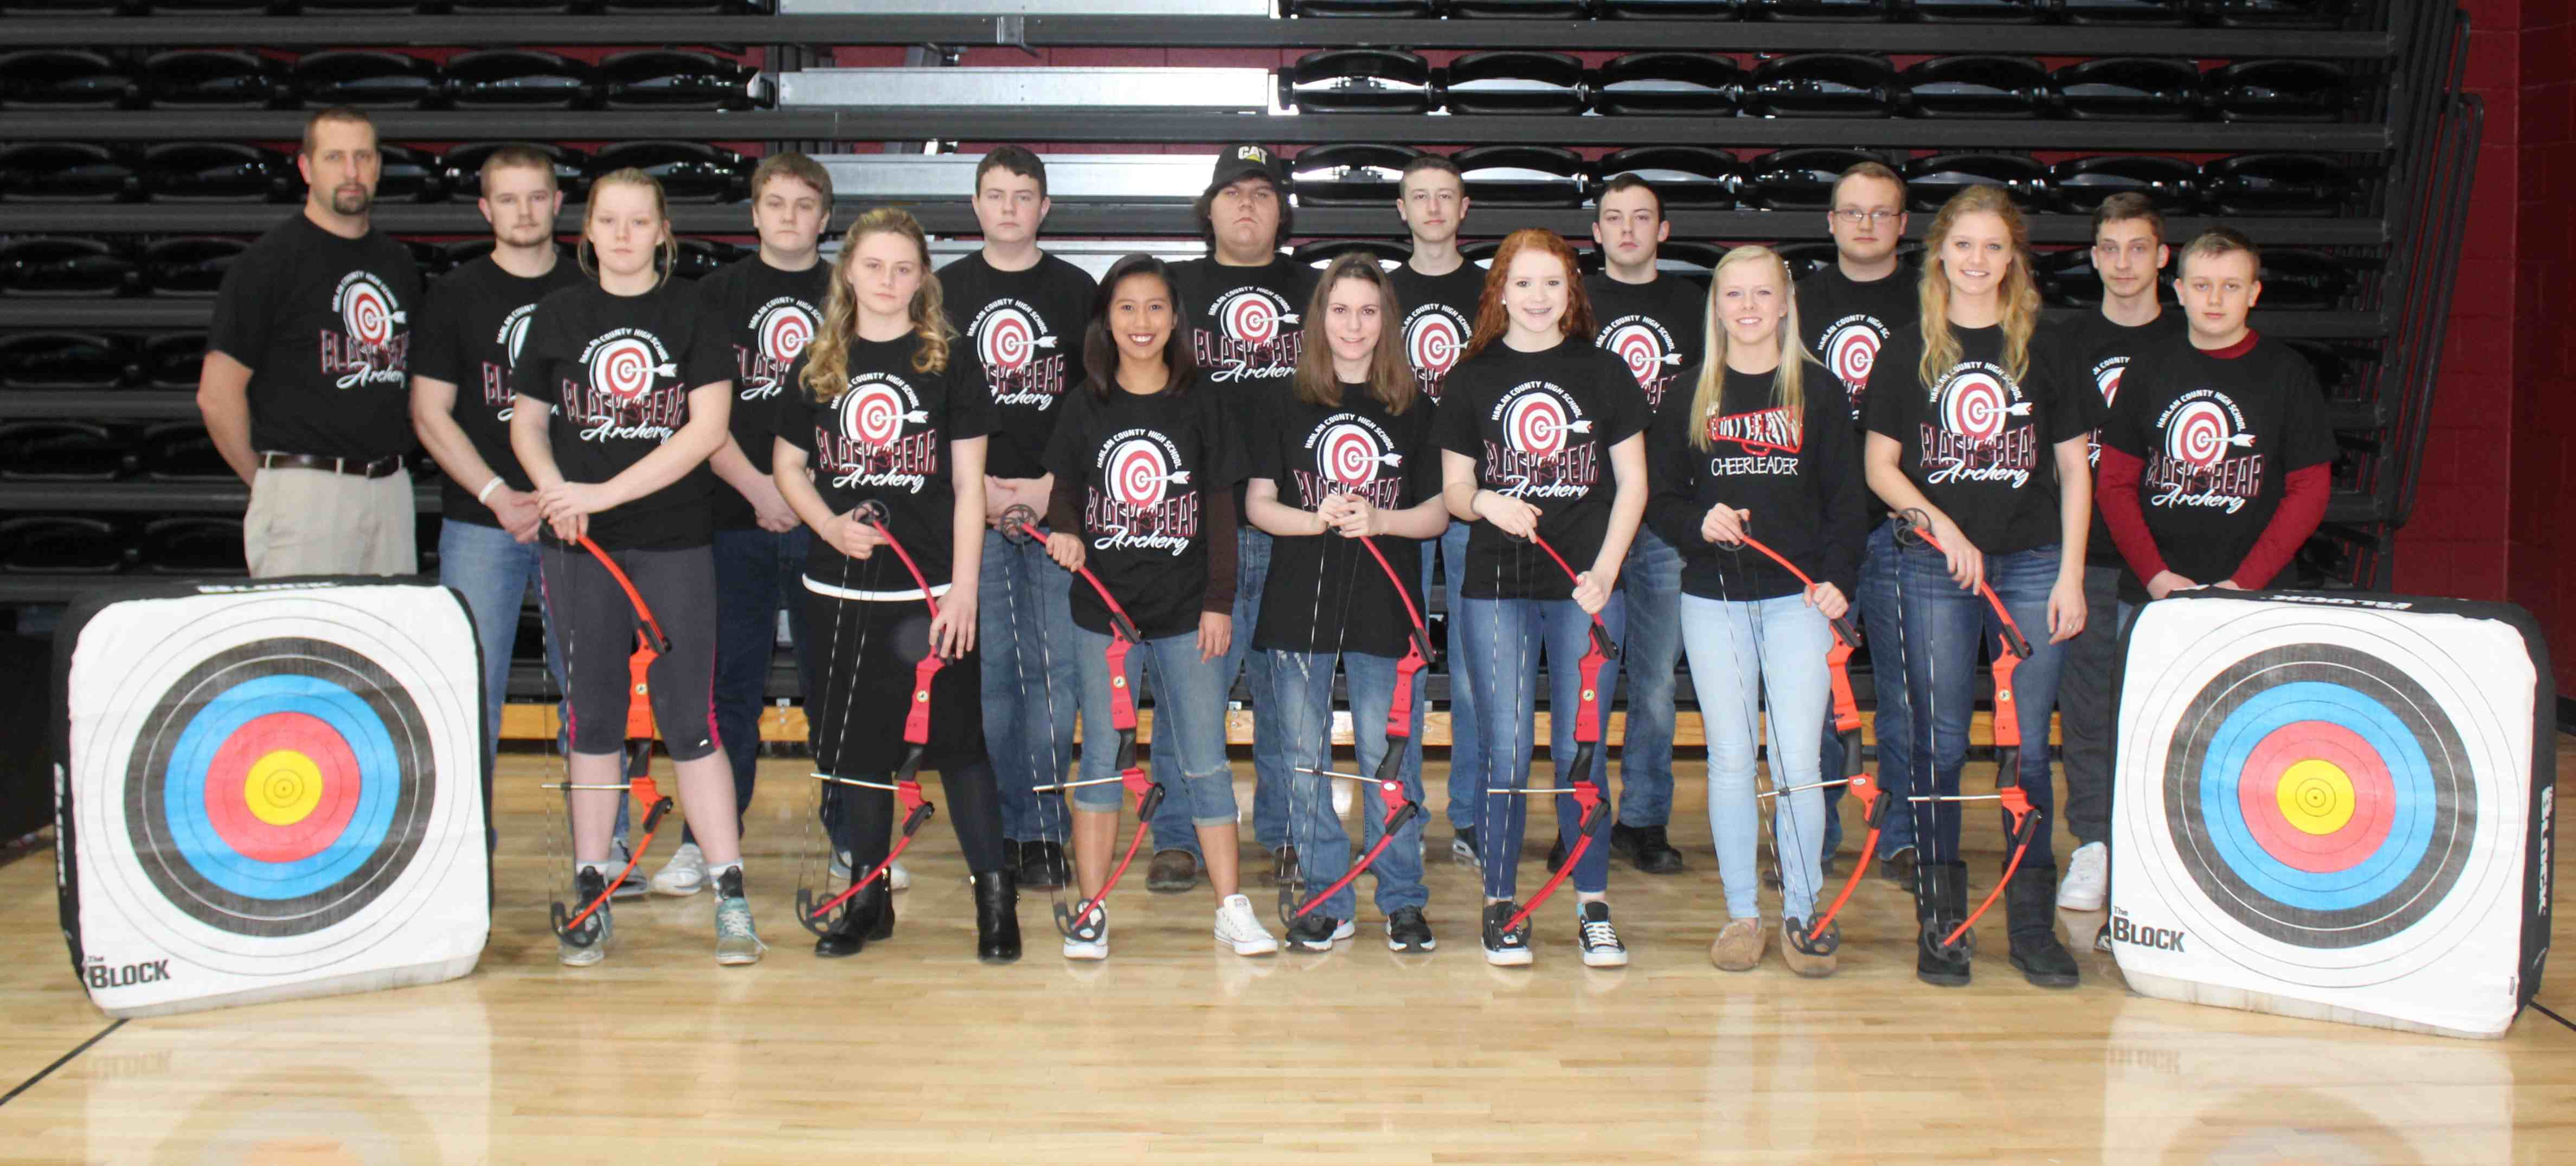 John Henson / Bear Tracks  Members of the Harlan County High School archery team include, from left, front row: Andrea Dean, Sasha Patterson, Rochelle Paguio, Kayla Bolin, Emily Evans, Baili Boggs, Breanna Faulkner and Dylan Gross; back row: coach Damon Lewis, Drew Nolan, Eli Lewis, Jeffrey Ramsey, Michael Ellison, Jimmy Rouse, Paul Browning, Calvin Gross and Trevor Wilson; not pictured: Shaun Warren and Lonnie Whitehead.